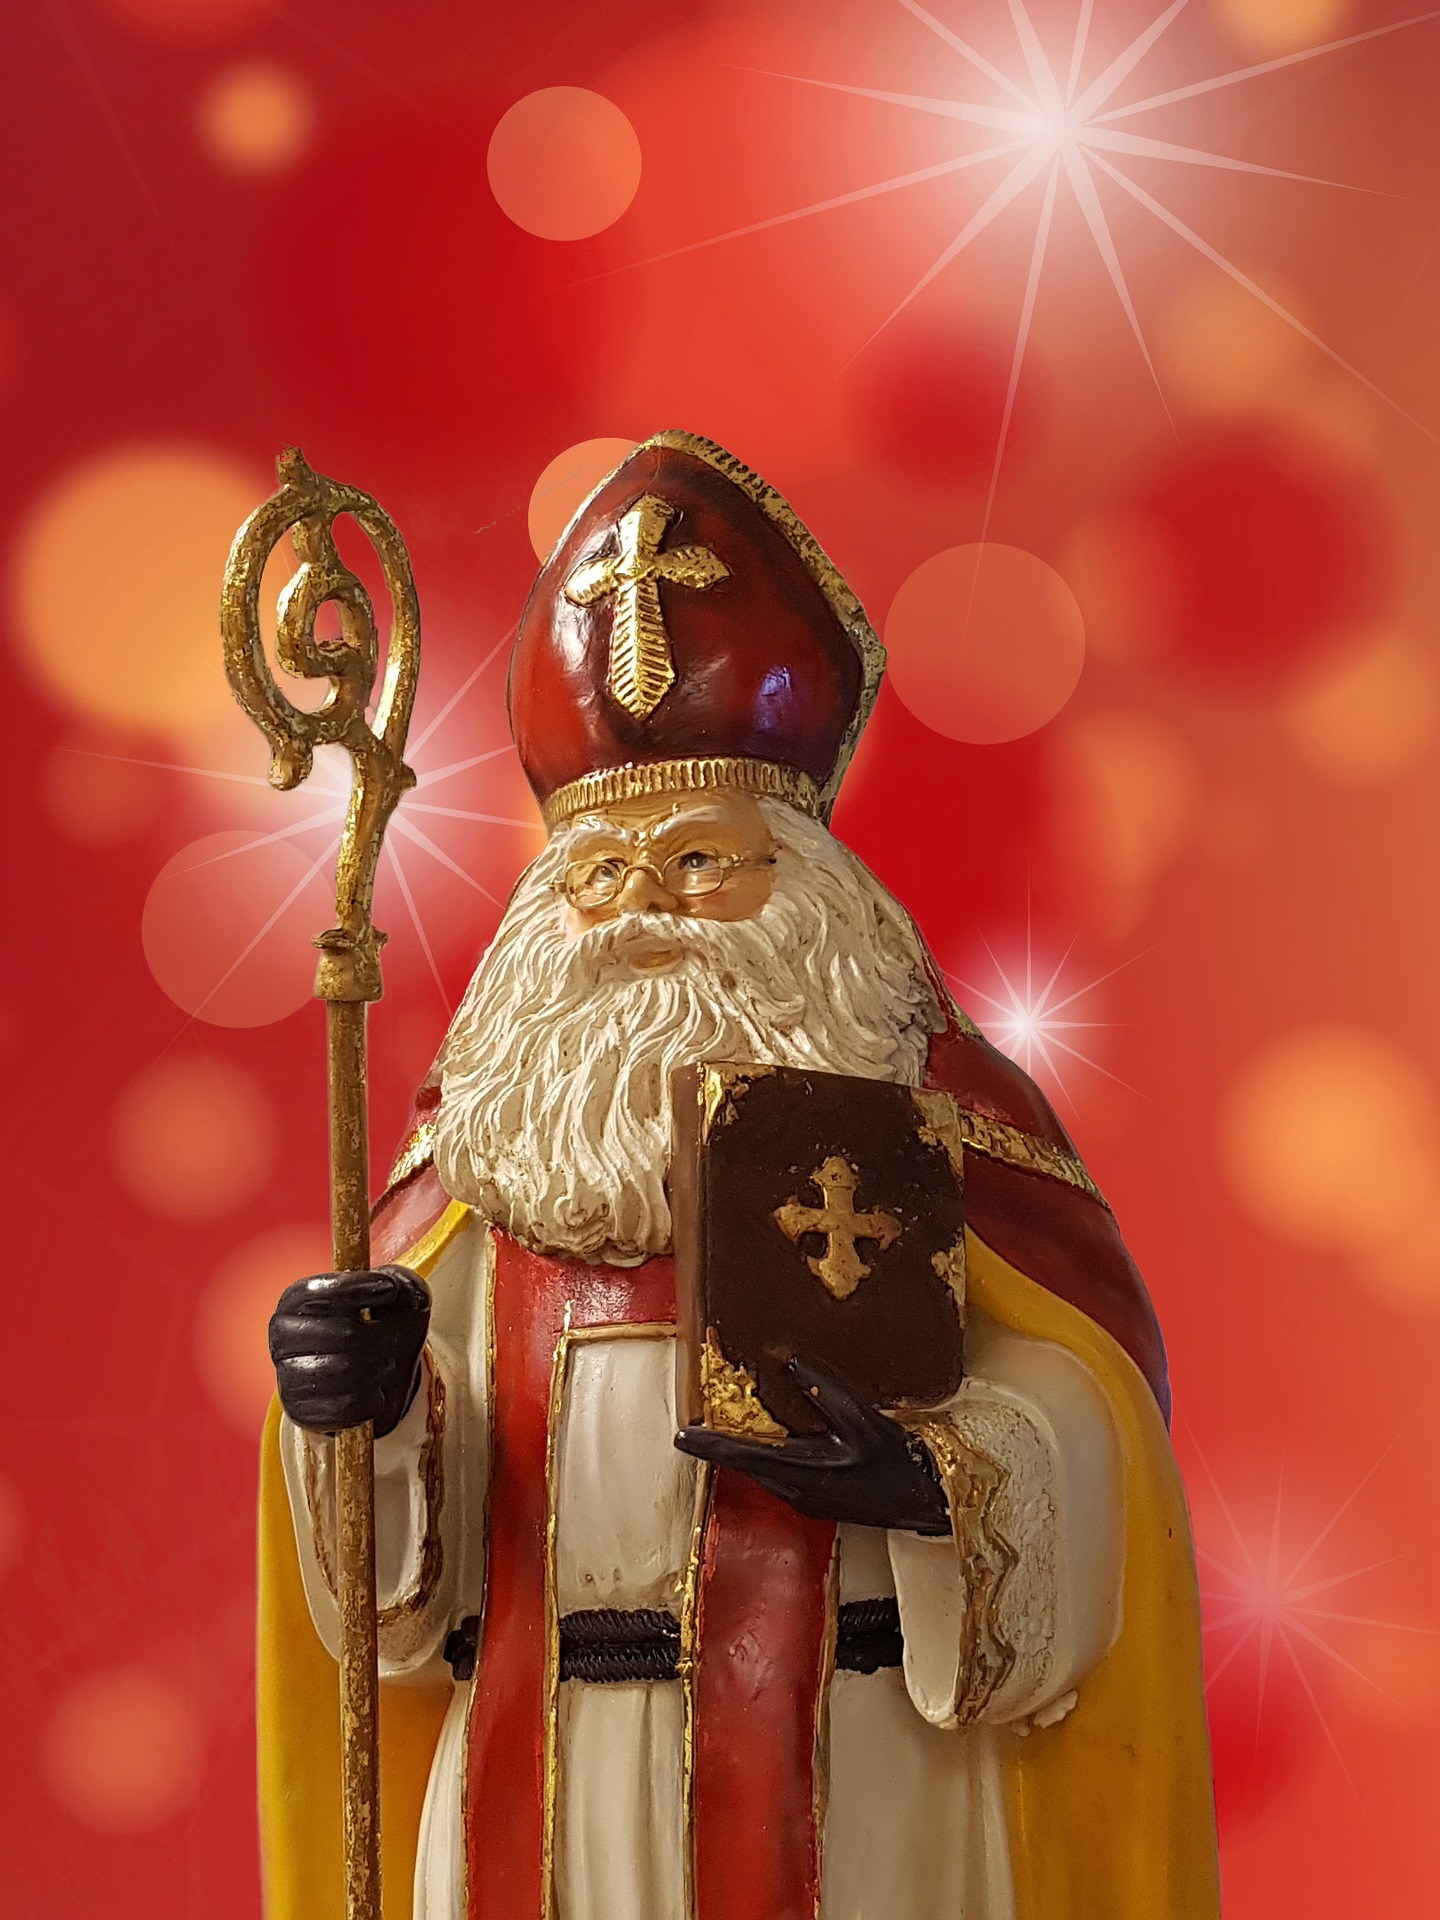 Saint Nicholas is clothed in the liturgical habit of the bishop with his mire and staff -